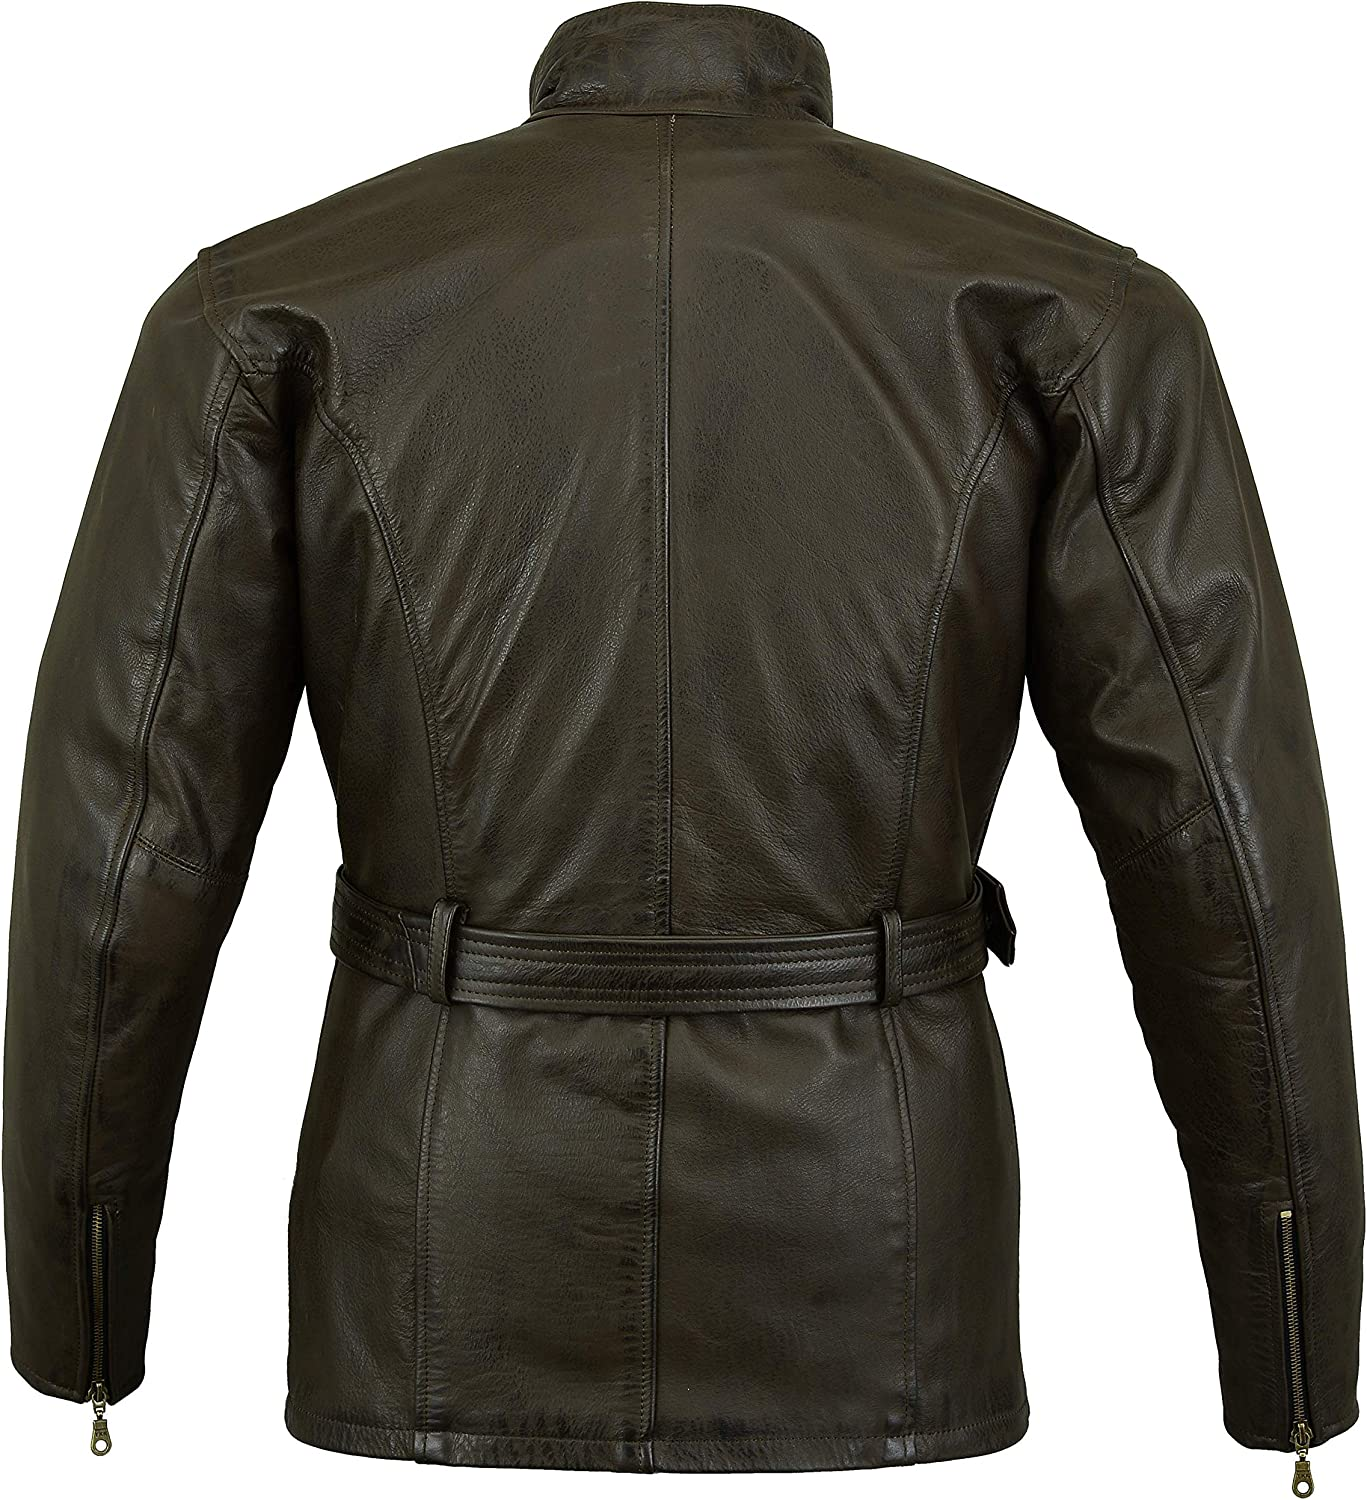 Bikers Gear Australia Classic Vintage Style Waxed Trail Blazer Leather Retro Motorcycle Jacket with CE1621-1 5 Piece Removable Armour Medium Black